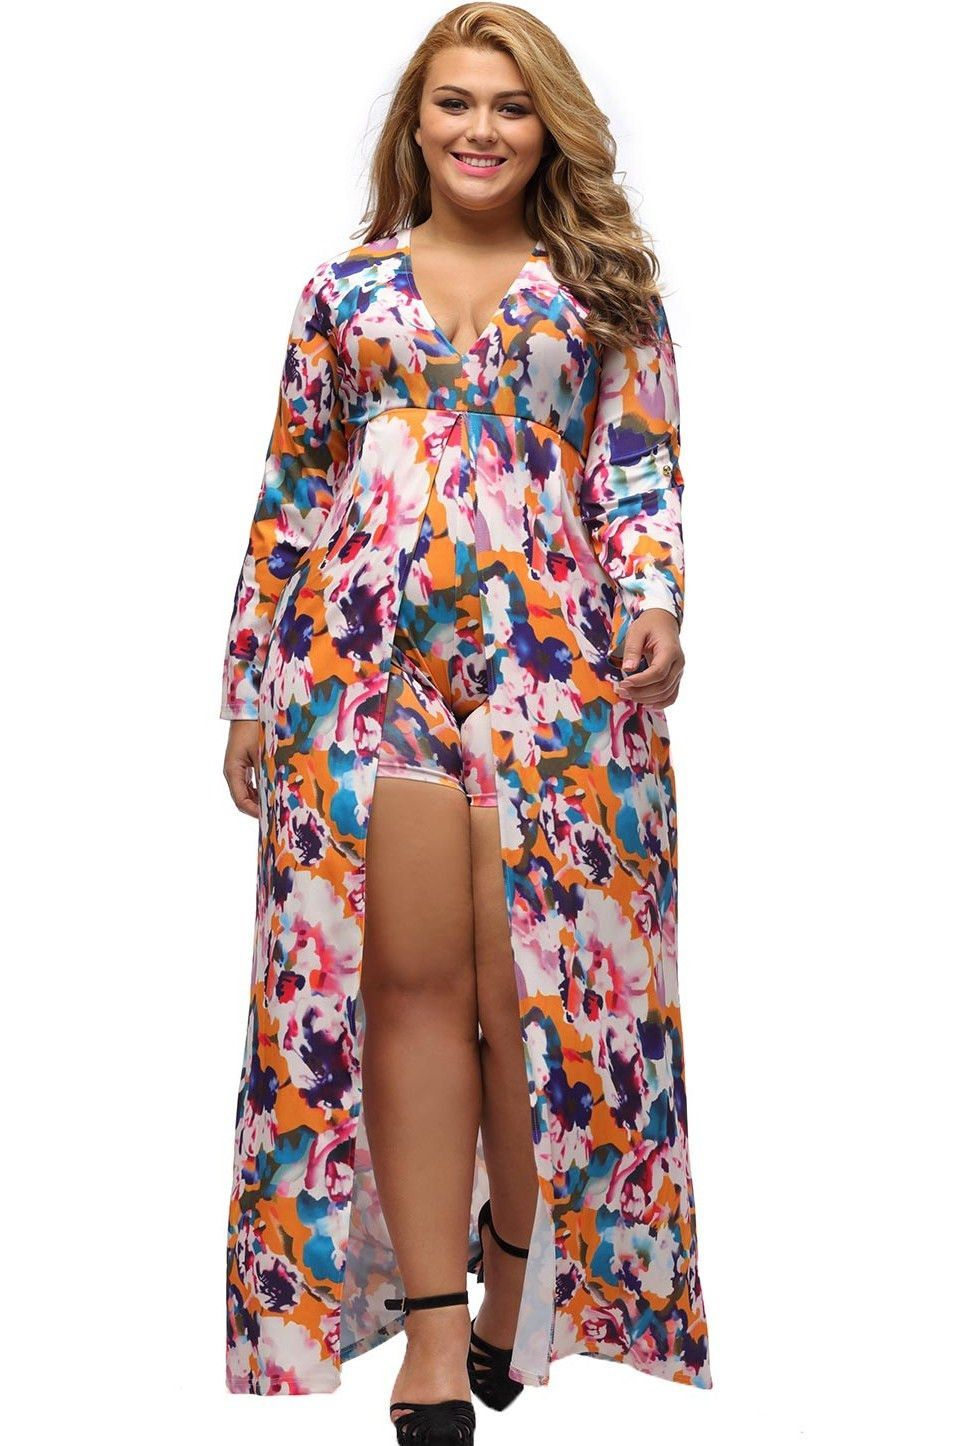 Long sleeve floral print plus size romper maxi dress full figured